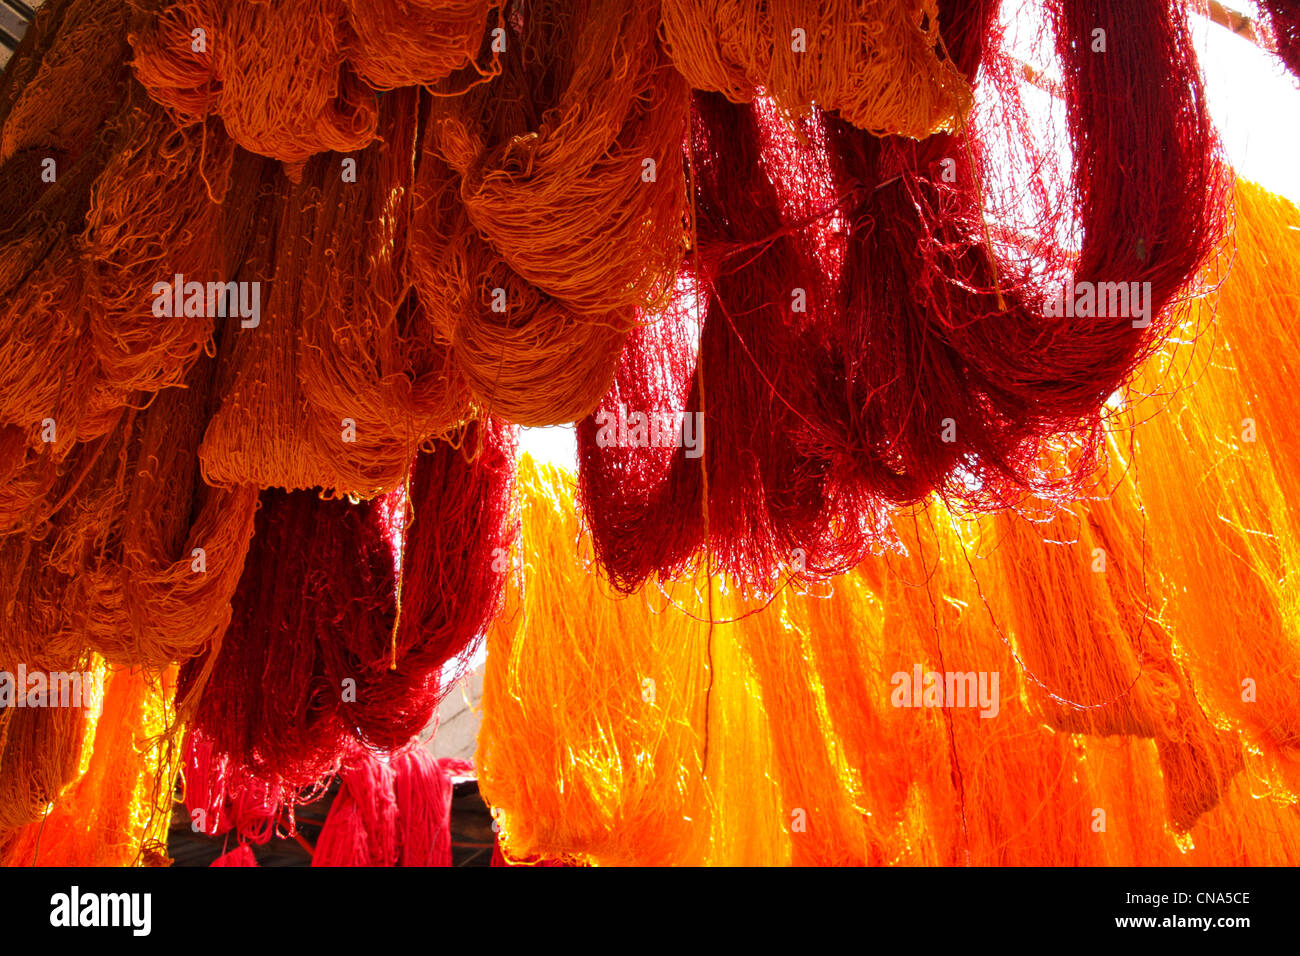 Freshly dyed red and orange skeins of wool hang drying in the sunlight at the Wool Dyers souk in the medina, Marrakech,Morocco Stock Photo